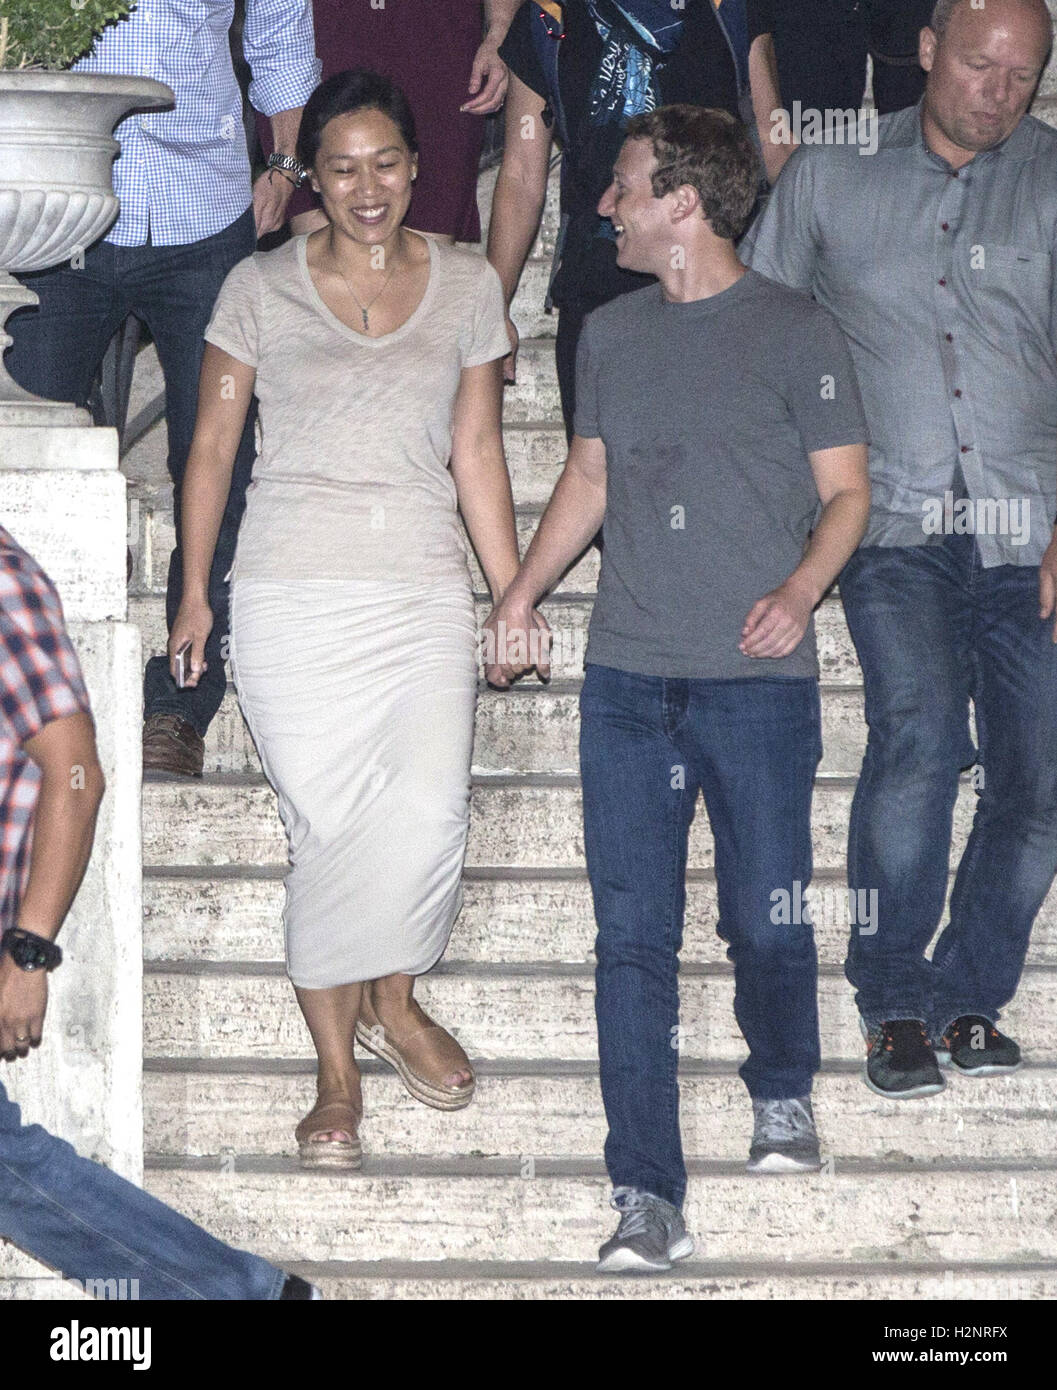 Mark Zuckerberg and his wife Priscilla enjoy a late night